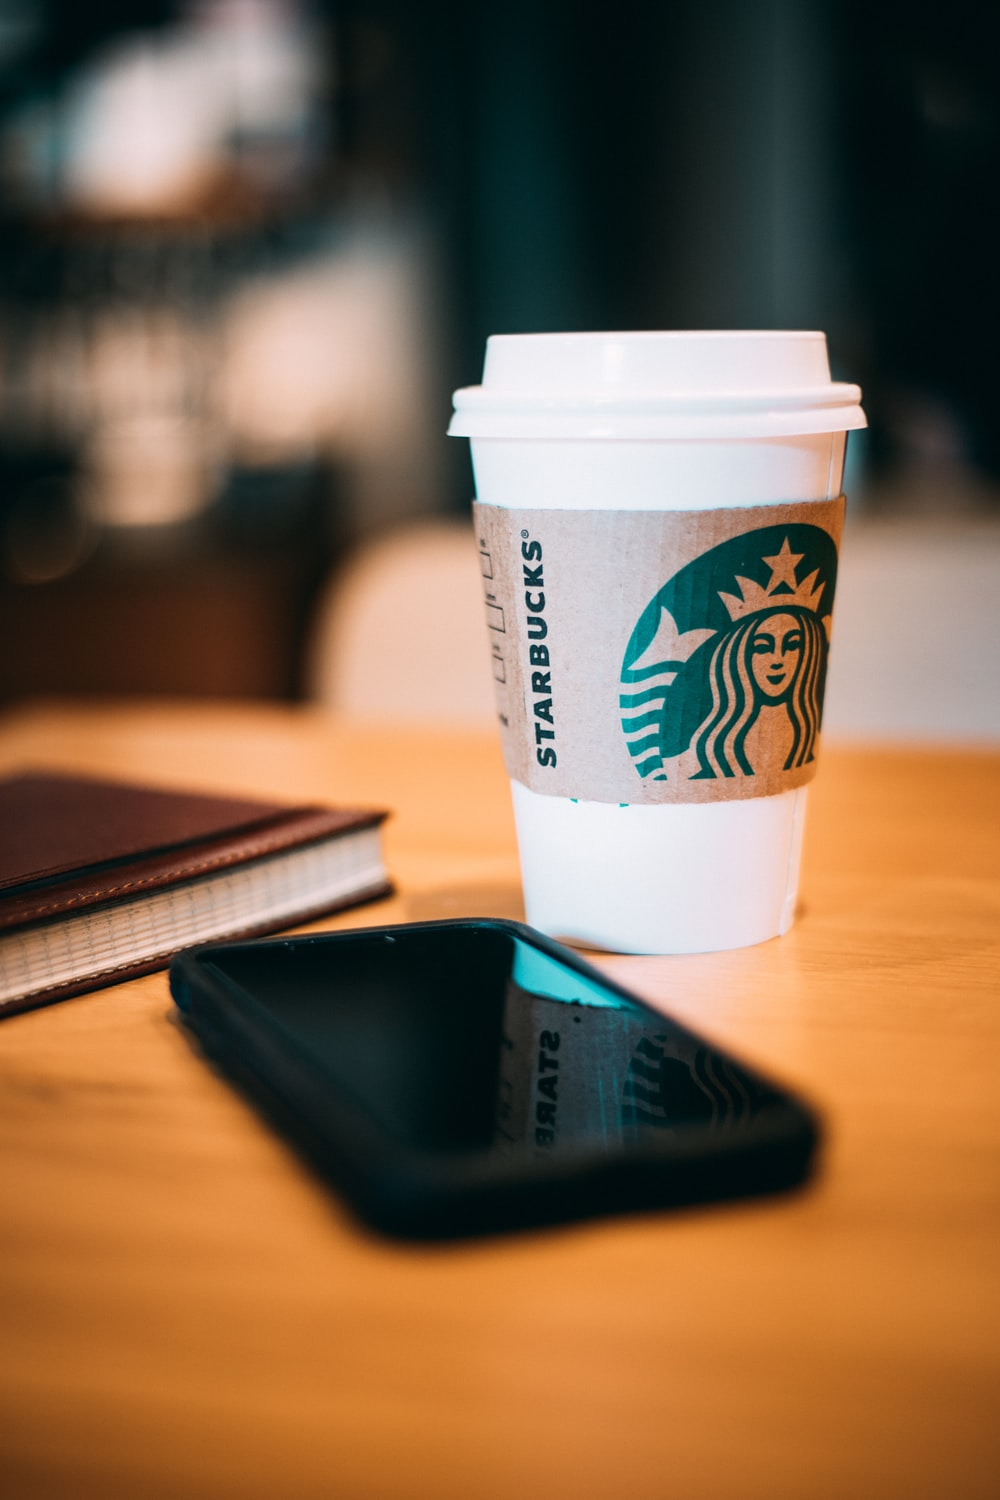 500+ Starbucks Pictures | Download Free Images on Unsplash